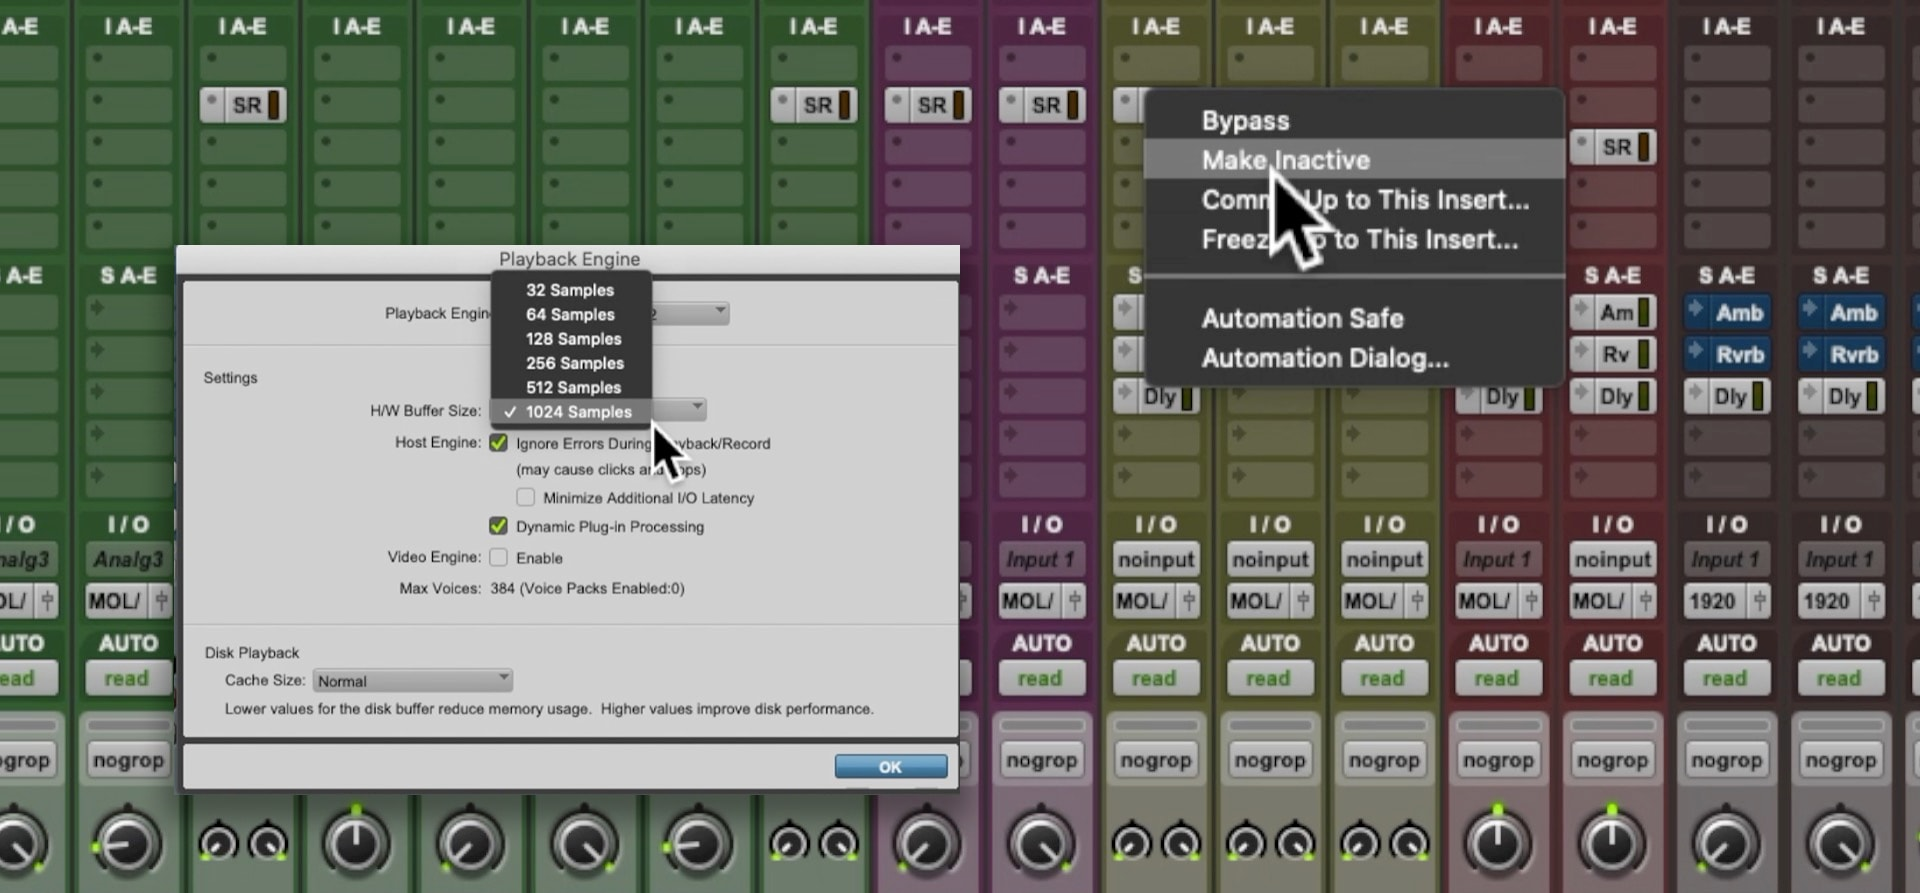 Pro Tools deactivating plugins, HW Buffer increase